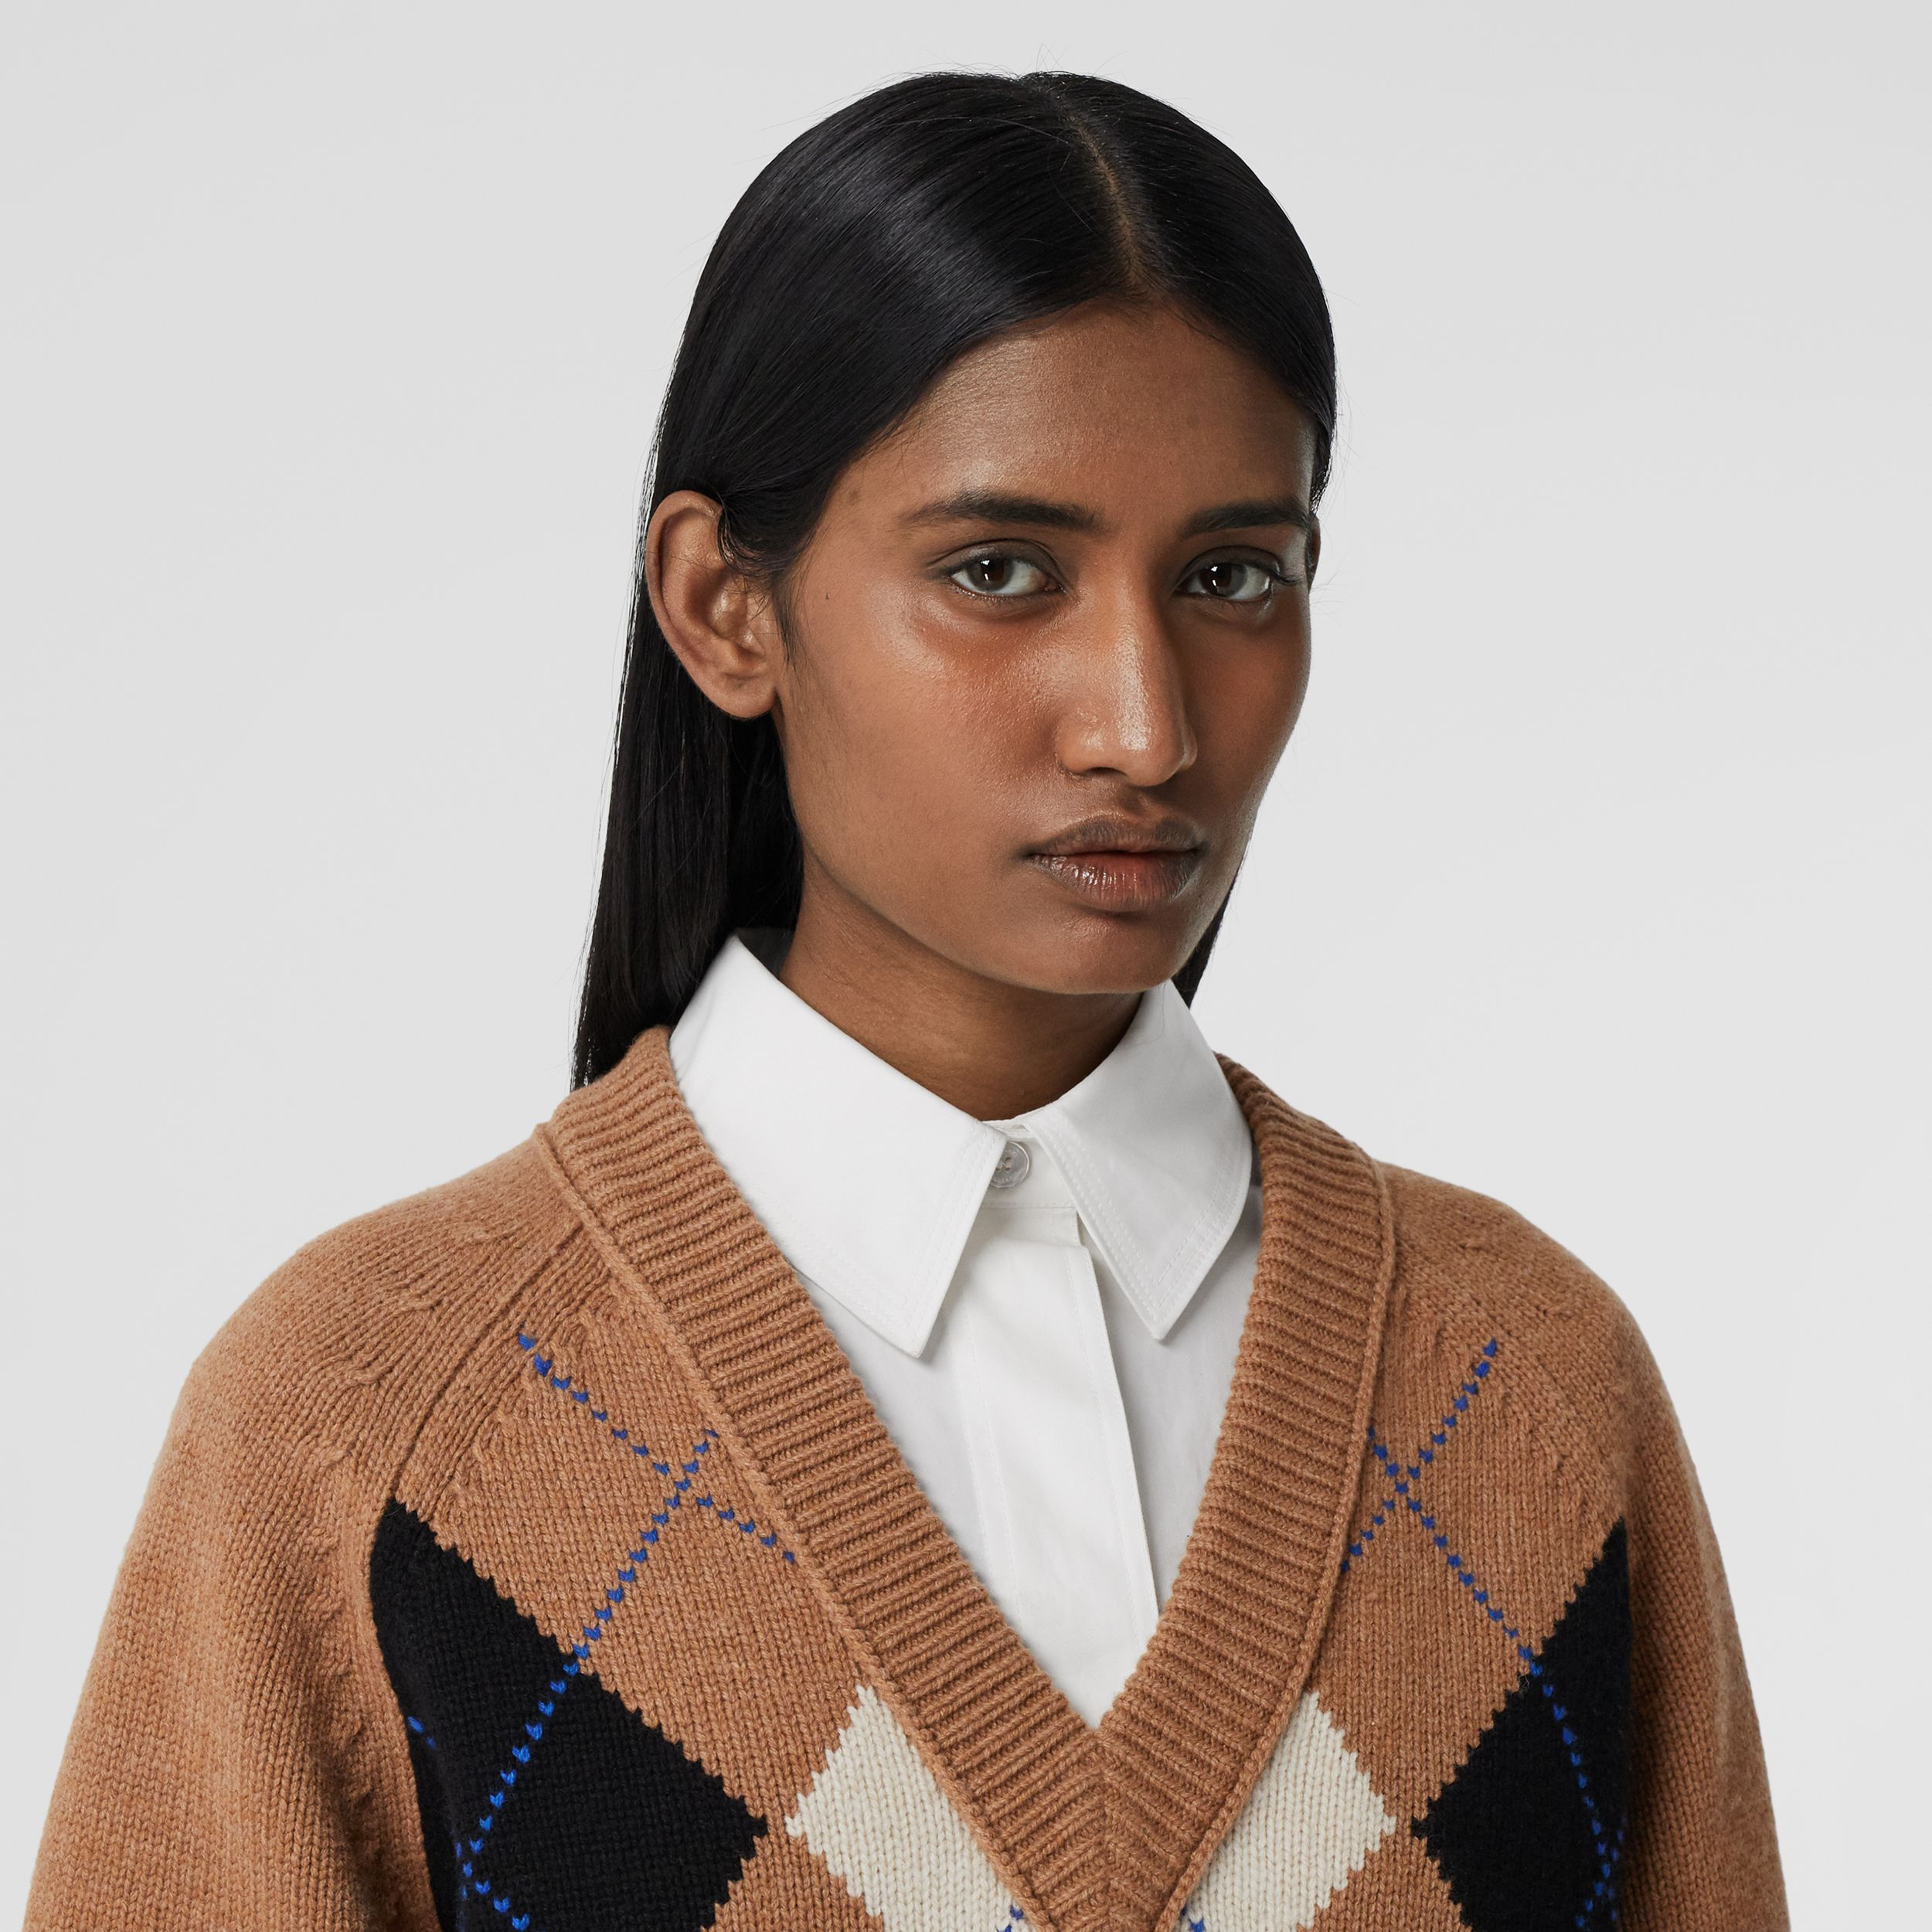 Cut-out Detail Argyle Intarsia Wool Cashmere Sweater in Camel - Women | Burberry - 2